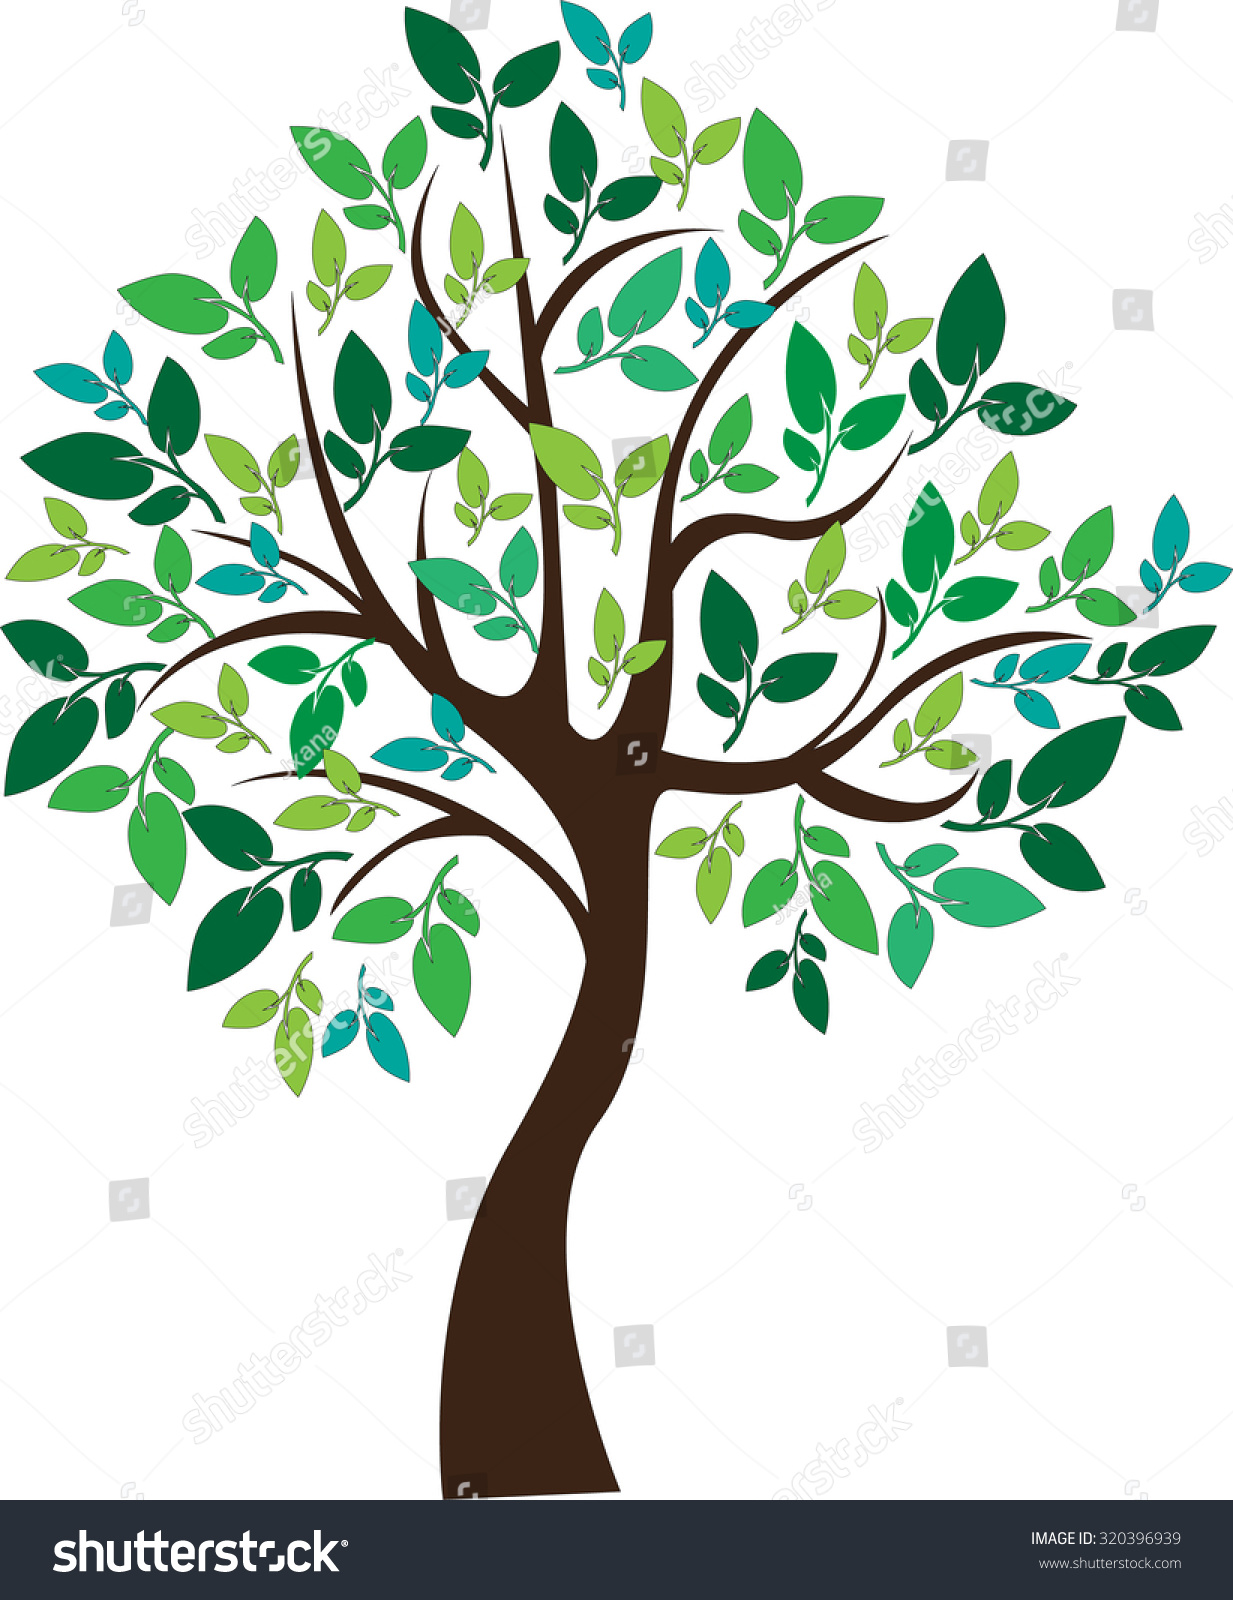 tree Abstract Circle Leaf Stock Vector (2018) 320396939 - Shutterstock